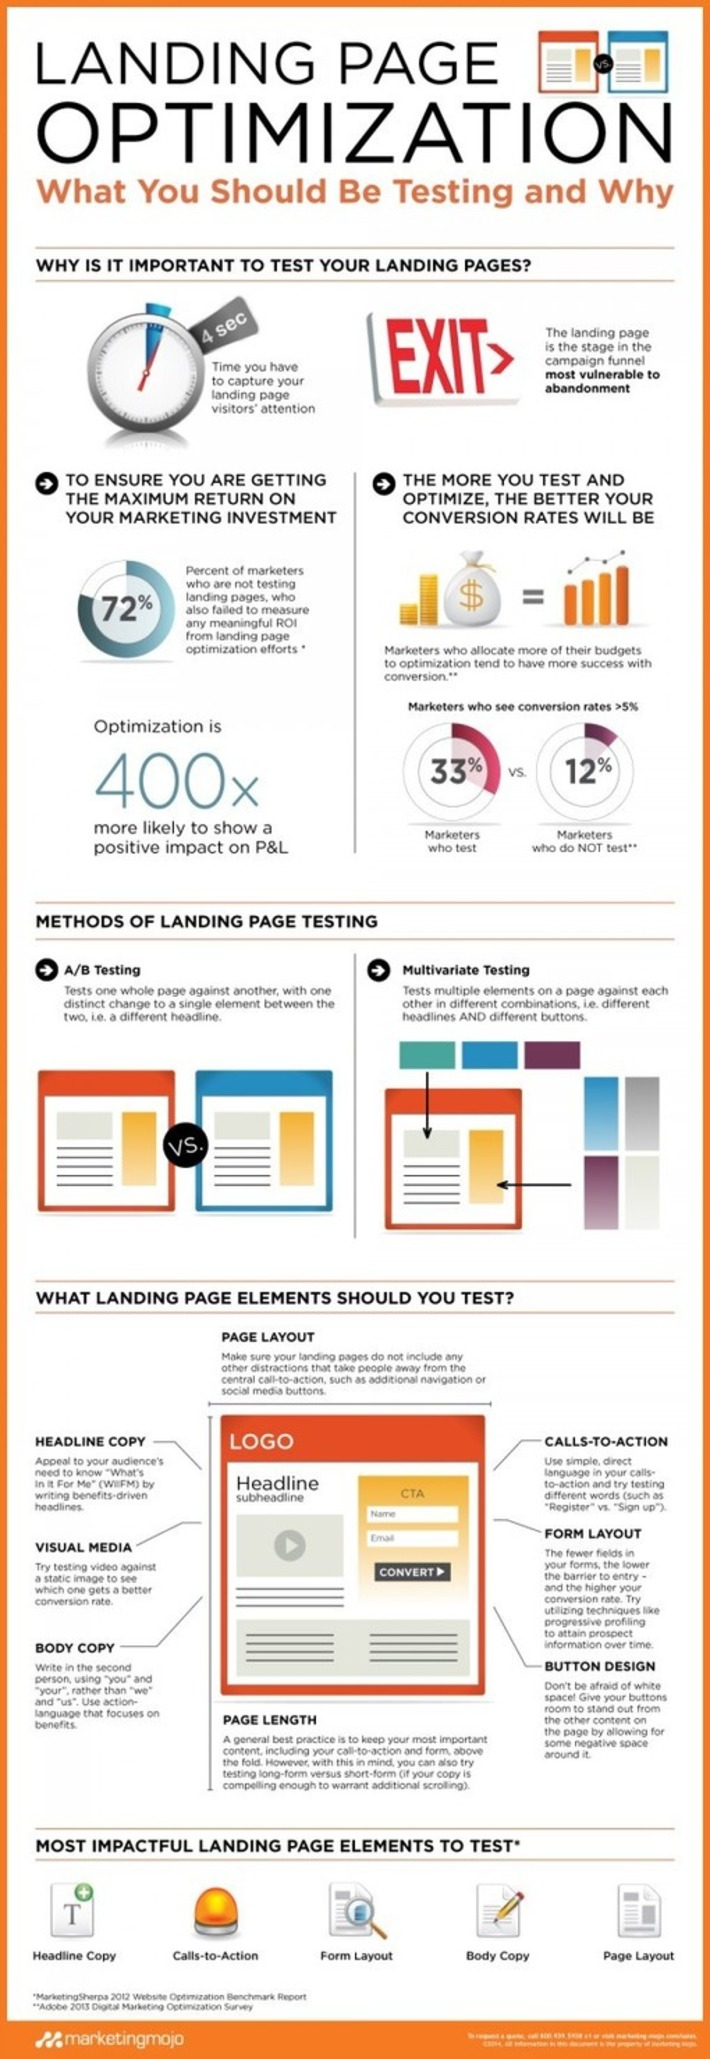 Landing Page Optimization: What You Should Be Testing and Why [Infographic] | Conversion Optimization for Lead Generation & eCommerce | Scoop.it